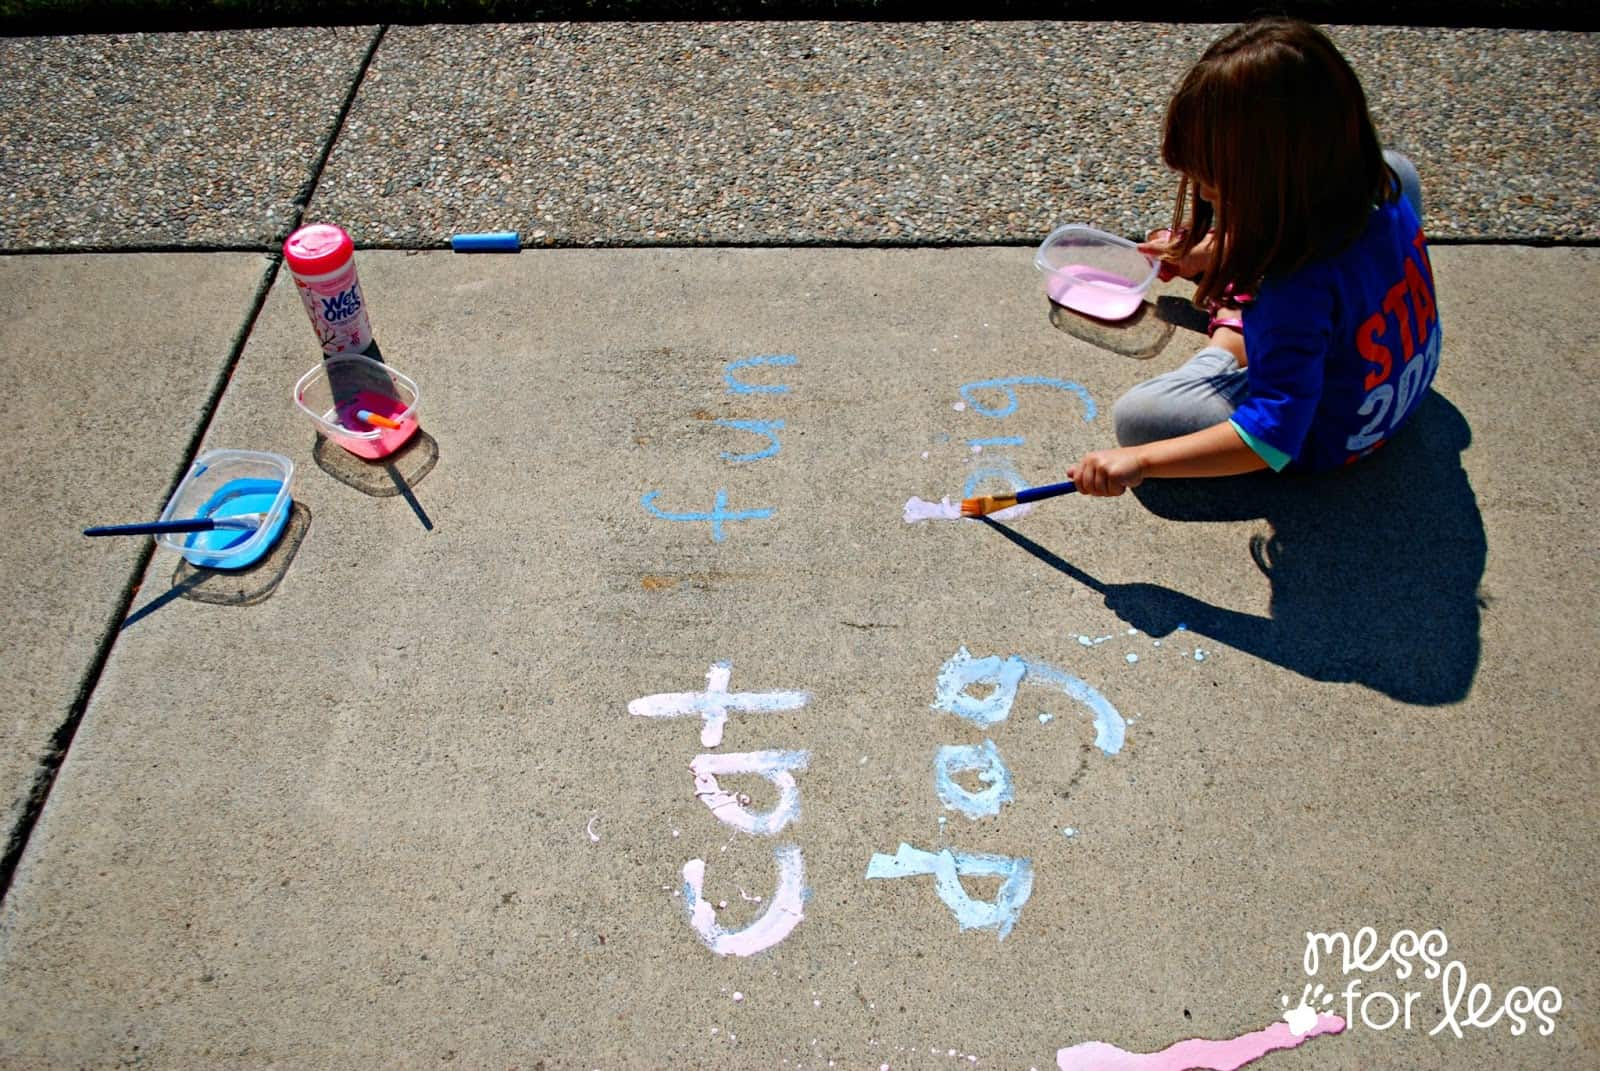 Painting words with sidewalk paint